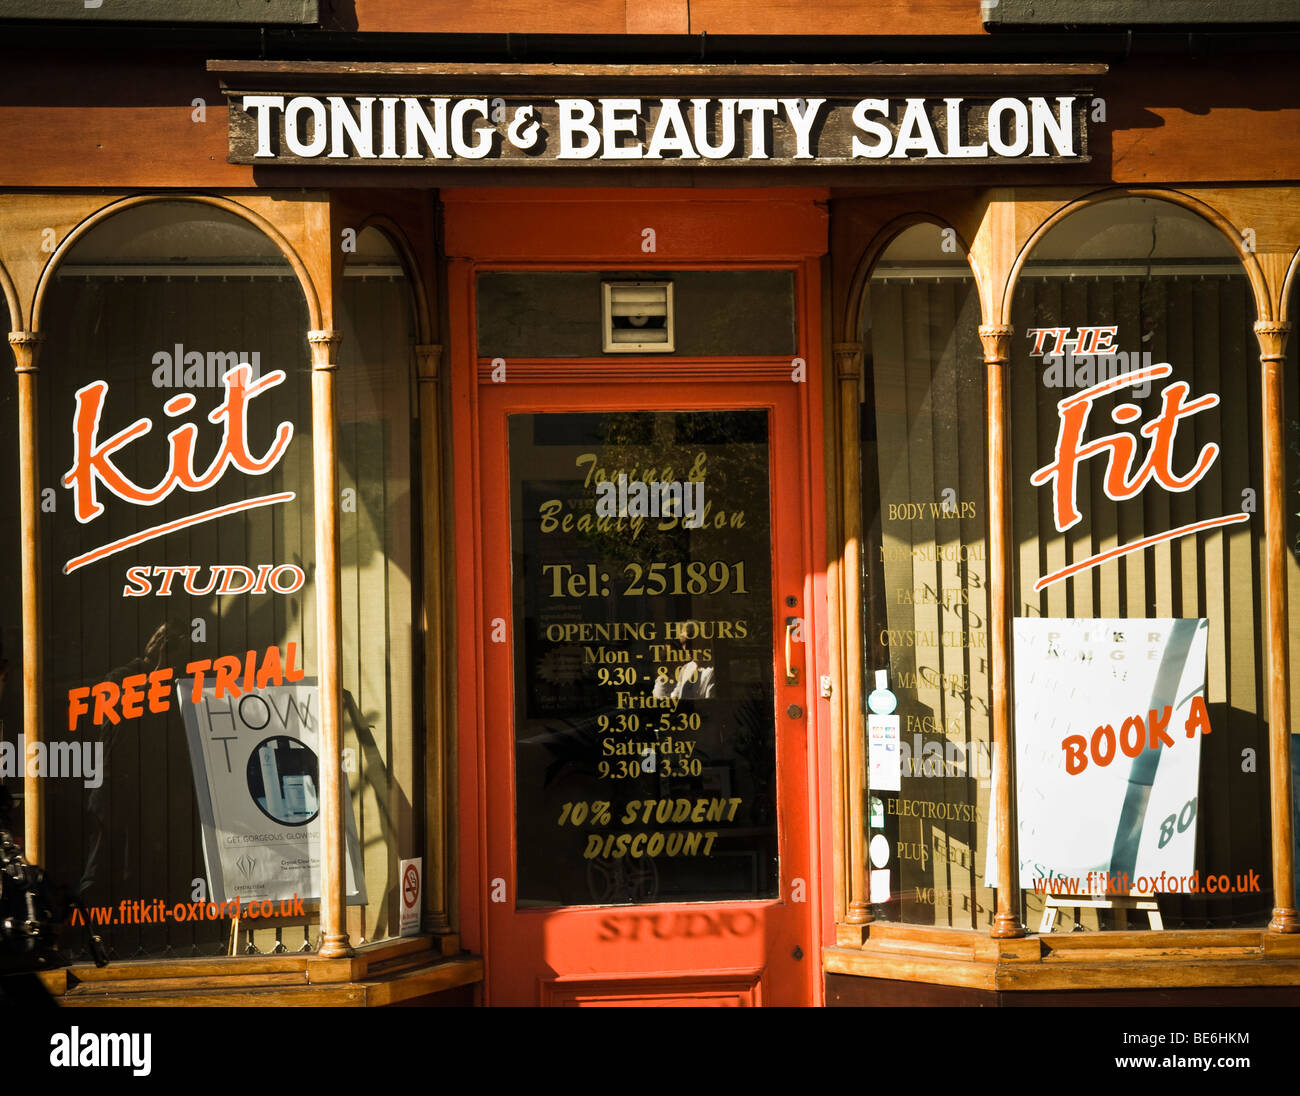 A toning and beauty salon - Stock Image